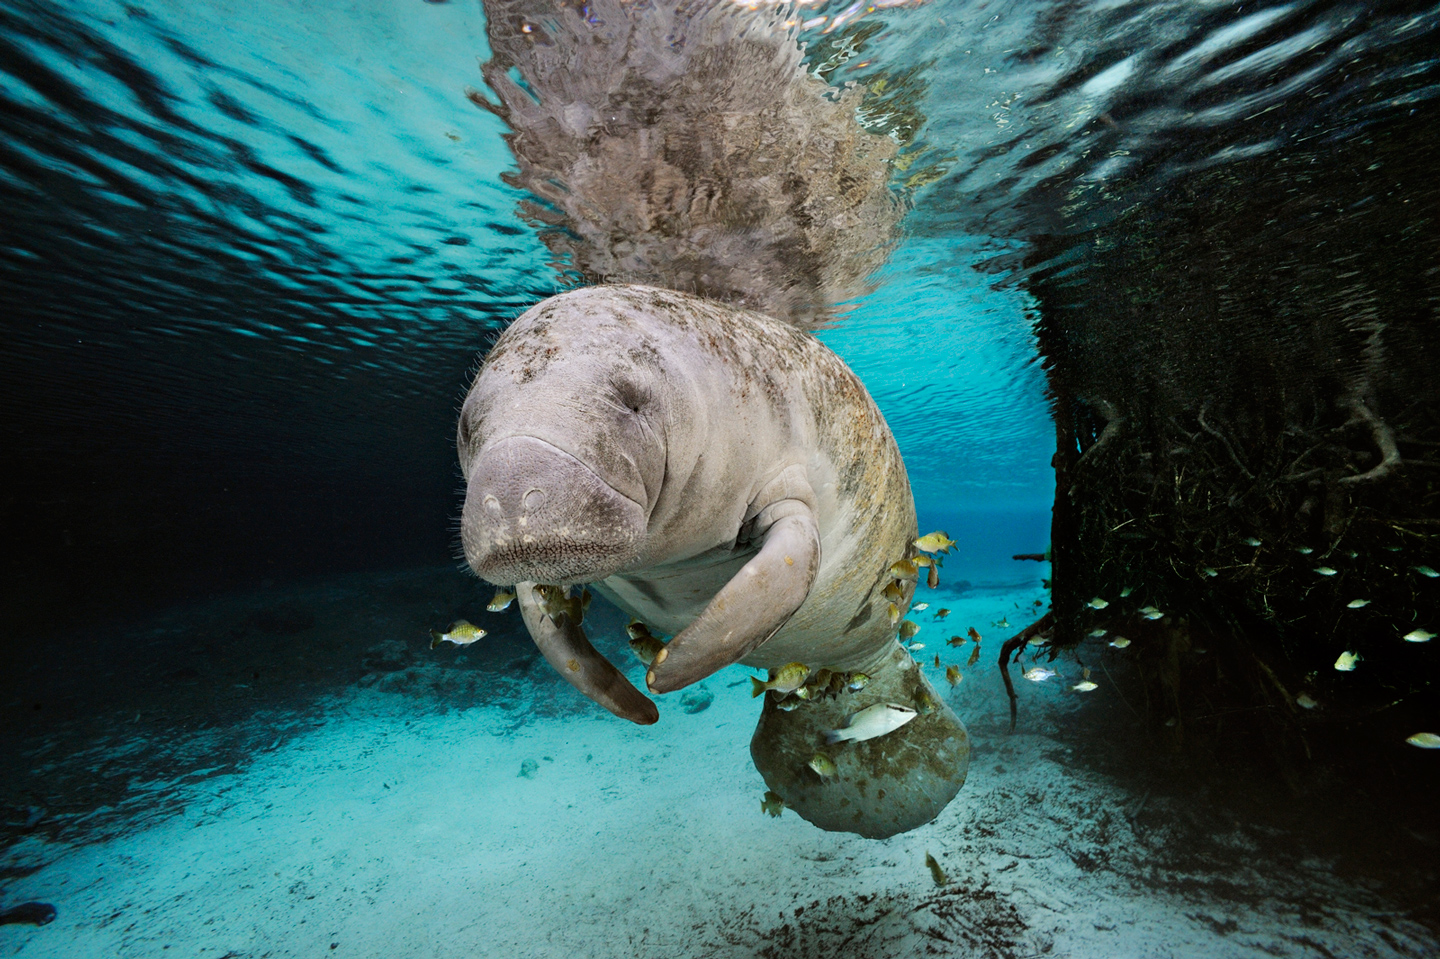 A Florida manatee surrounded by fish and tree roots swims in a fresh water spring. <div class='credit'><strong>Credit:</strong> A Florida manatee surrounded by fish and tree roots swims in a fresh water spring. </div>